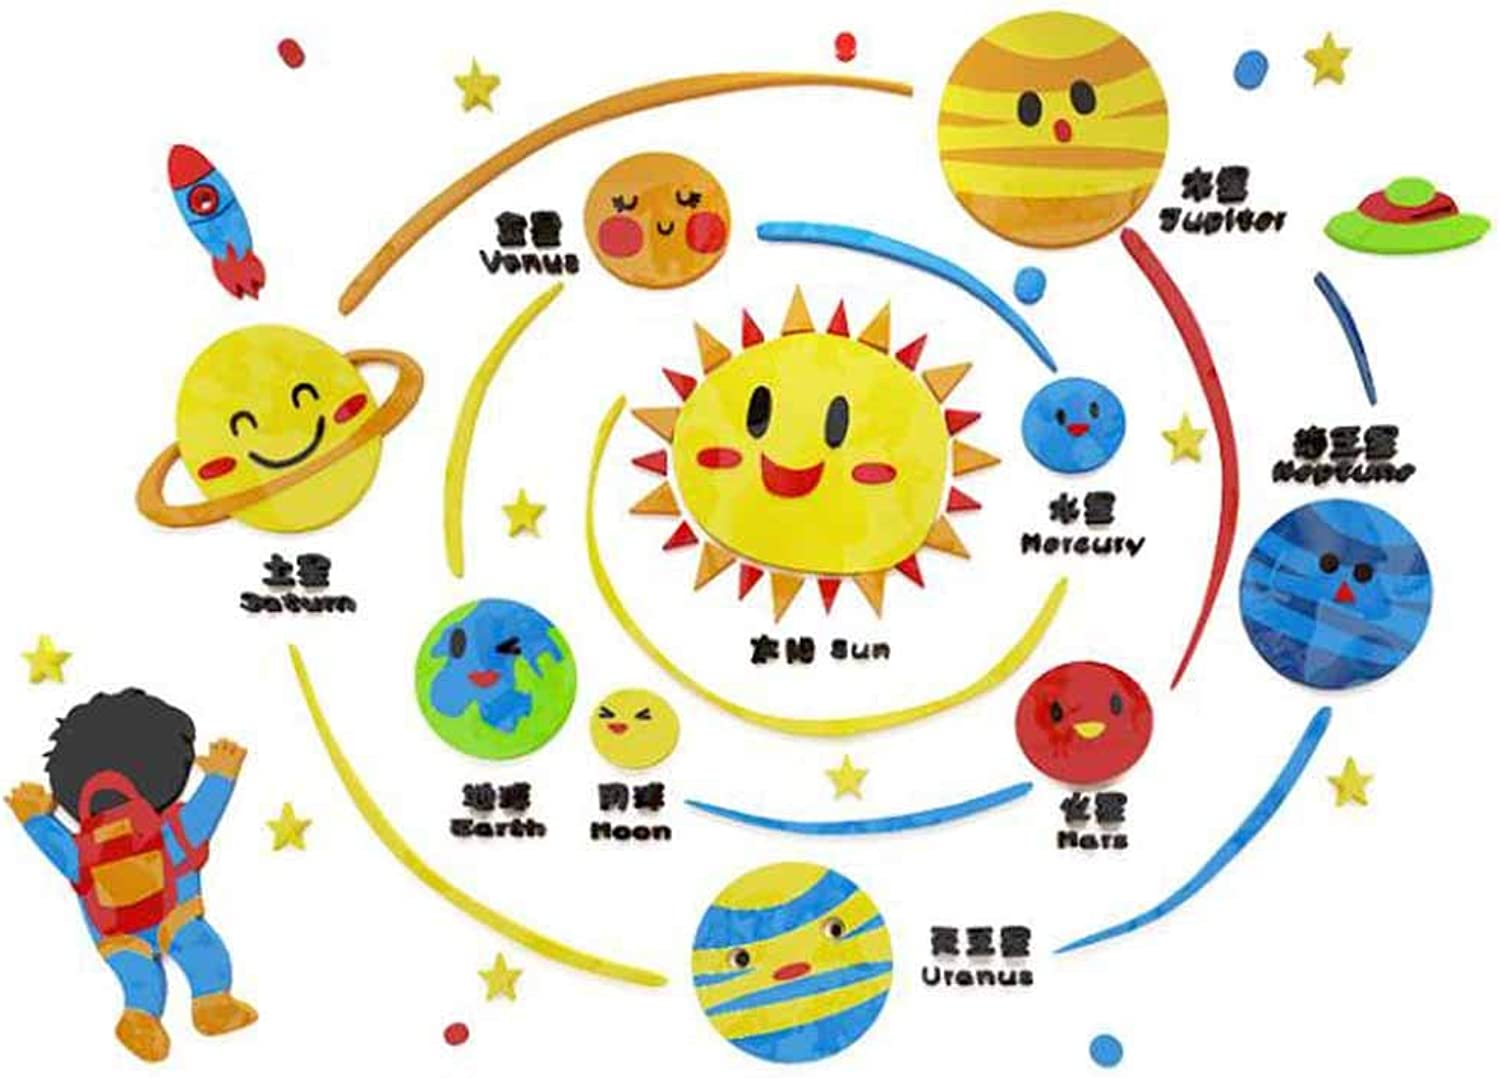 Acrylic Kids Wall Decal 3D Cartoon colorful Wall Stickers Solar System Kids Bedroom Decoration